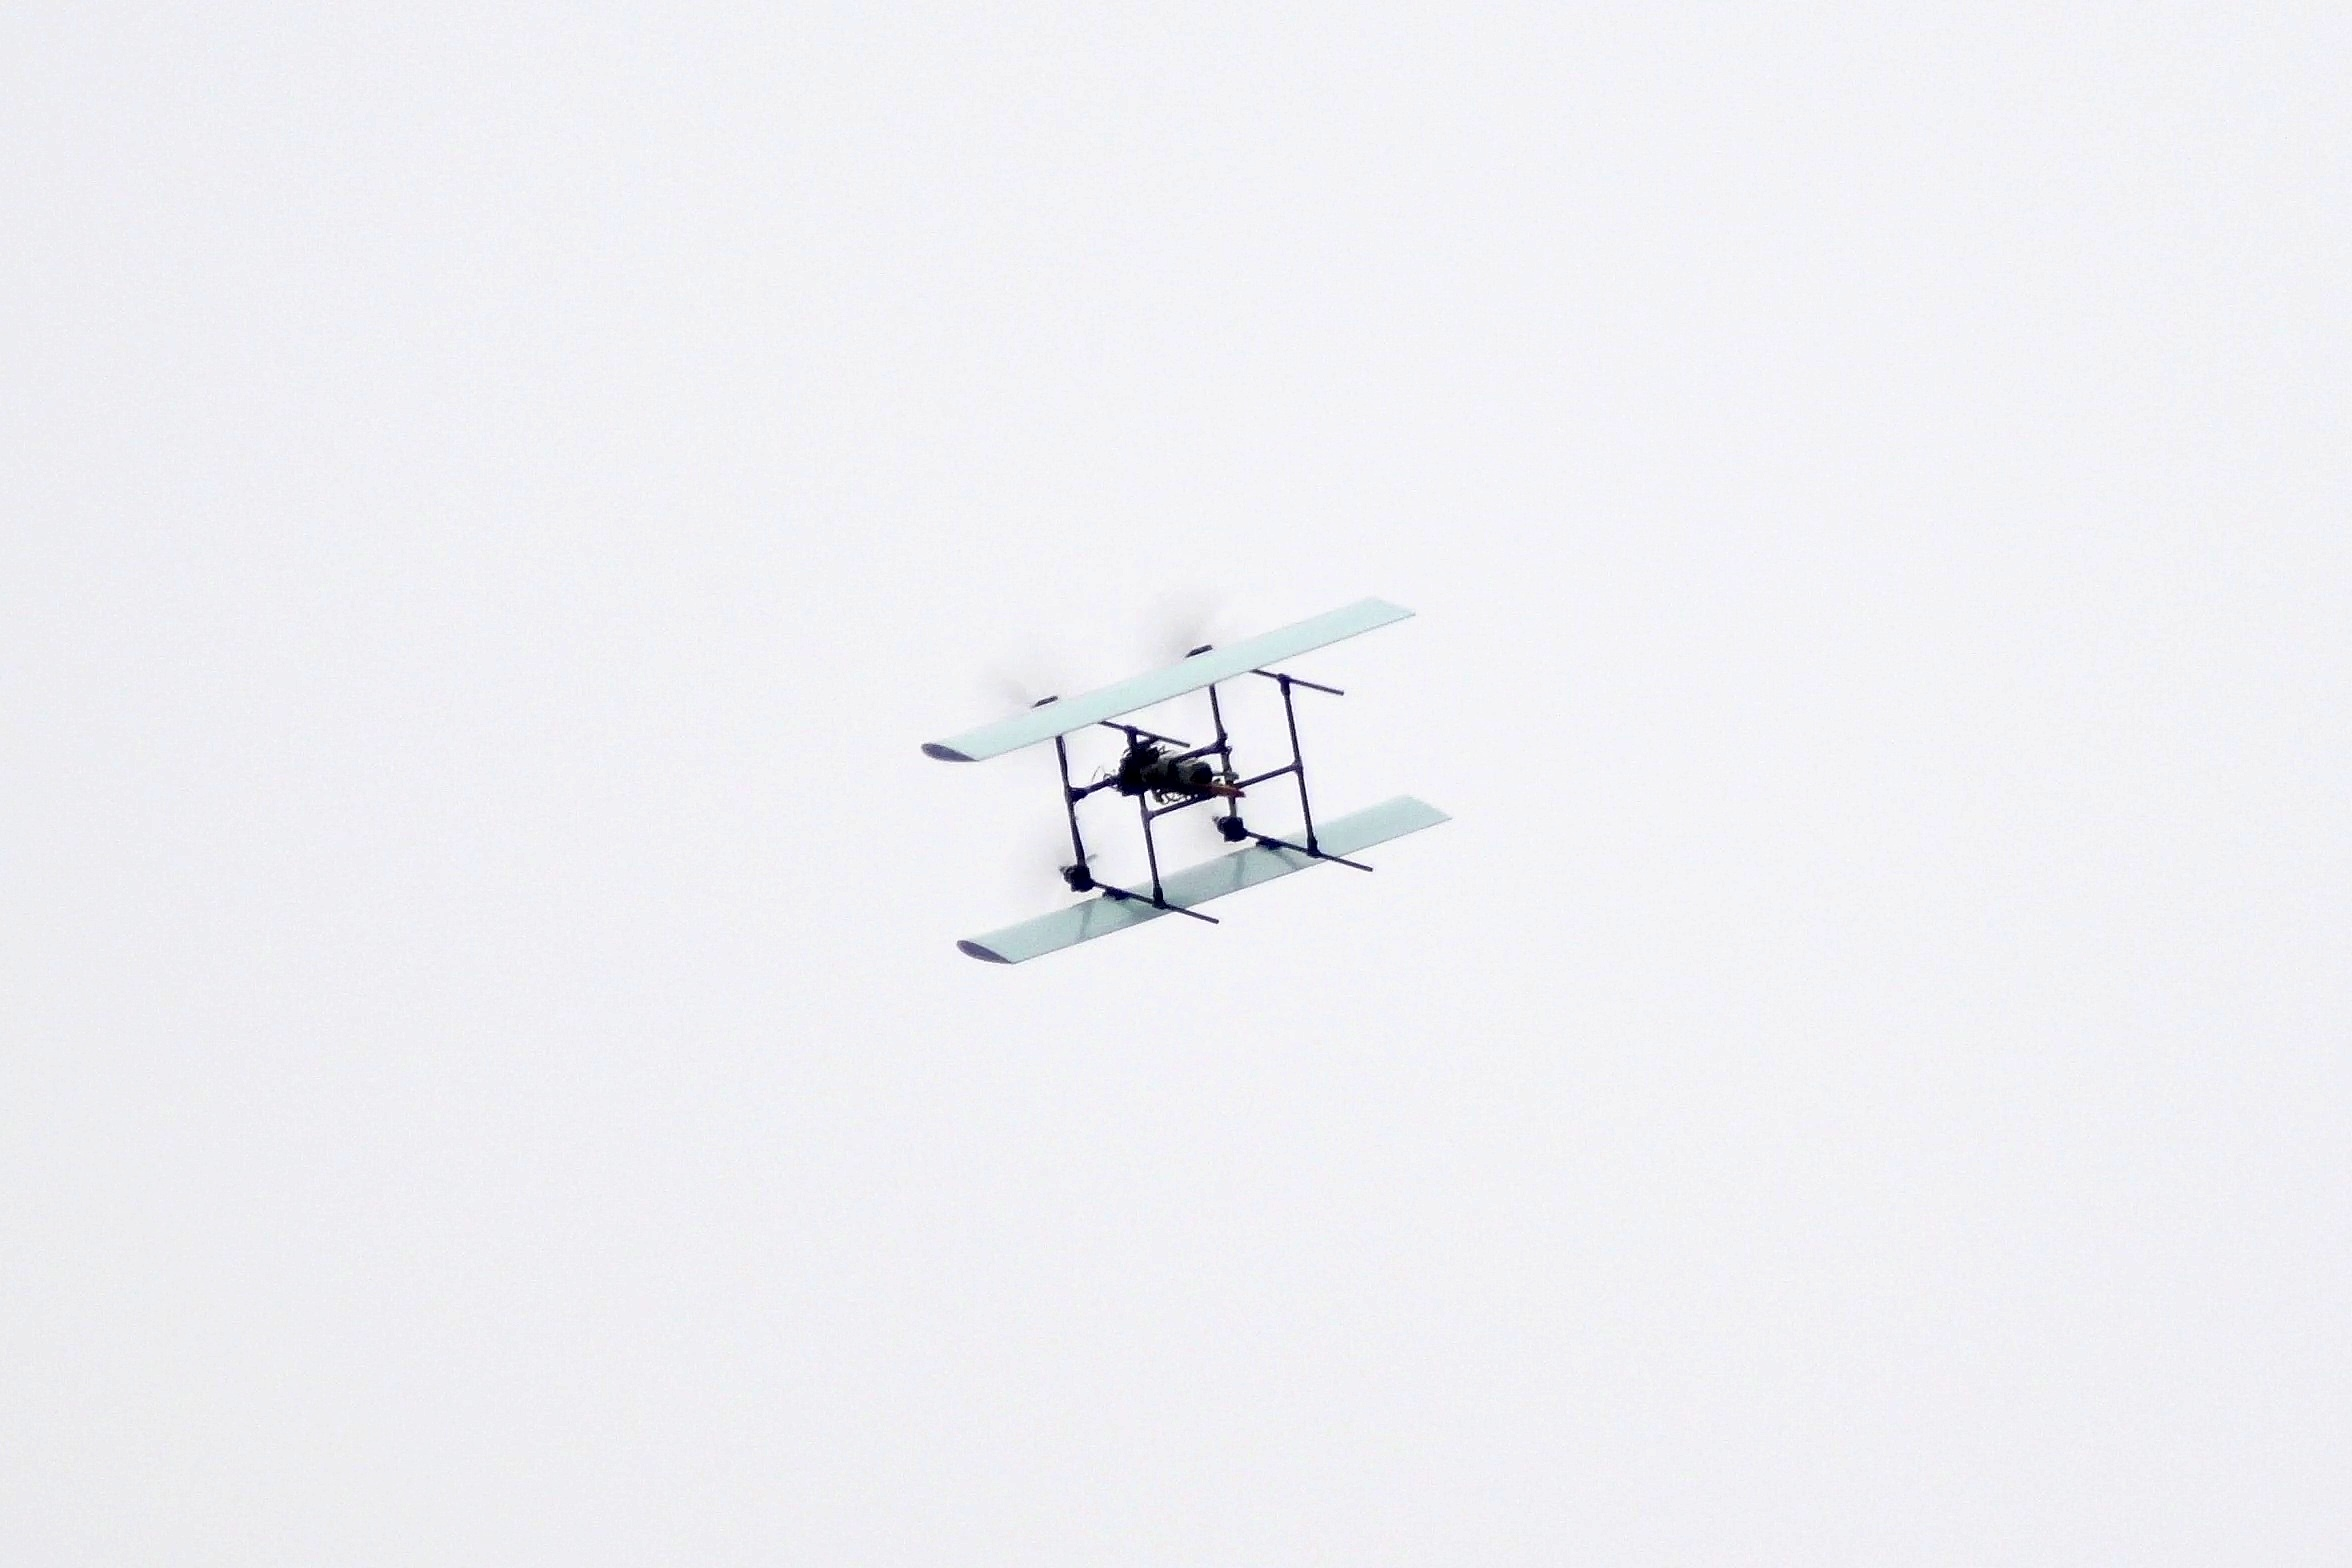 Quadrotor Tailsitter Bi-Plane VTOL Aircraft Forward Flight Mode